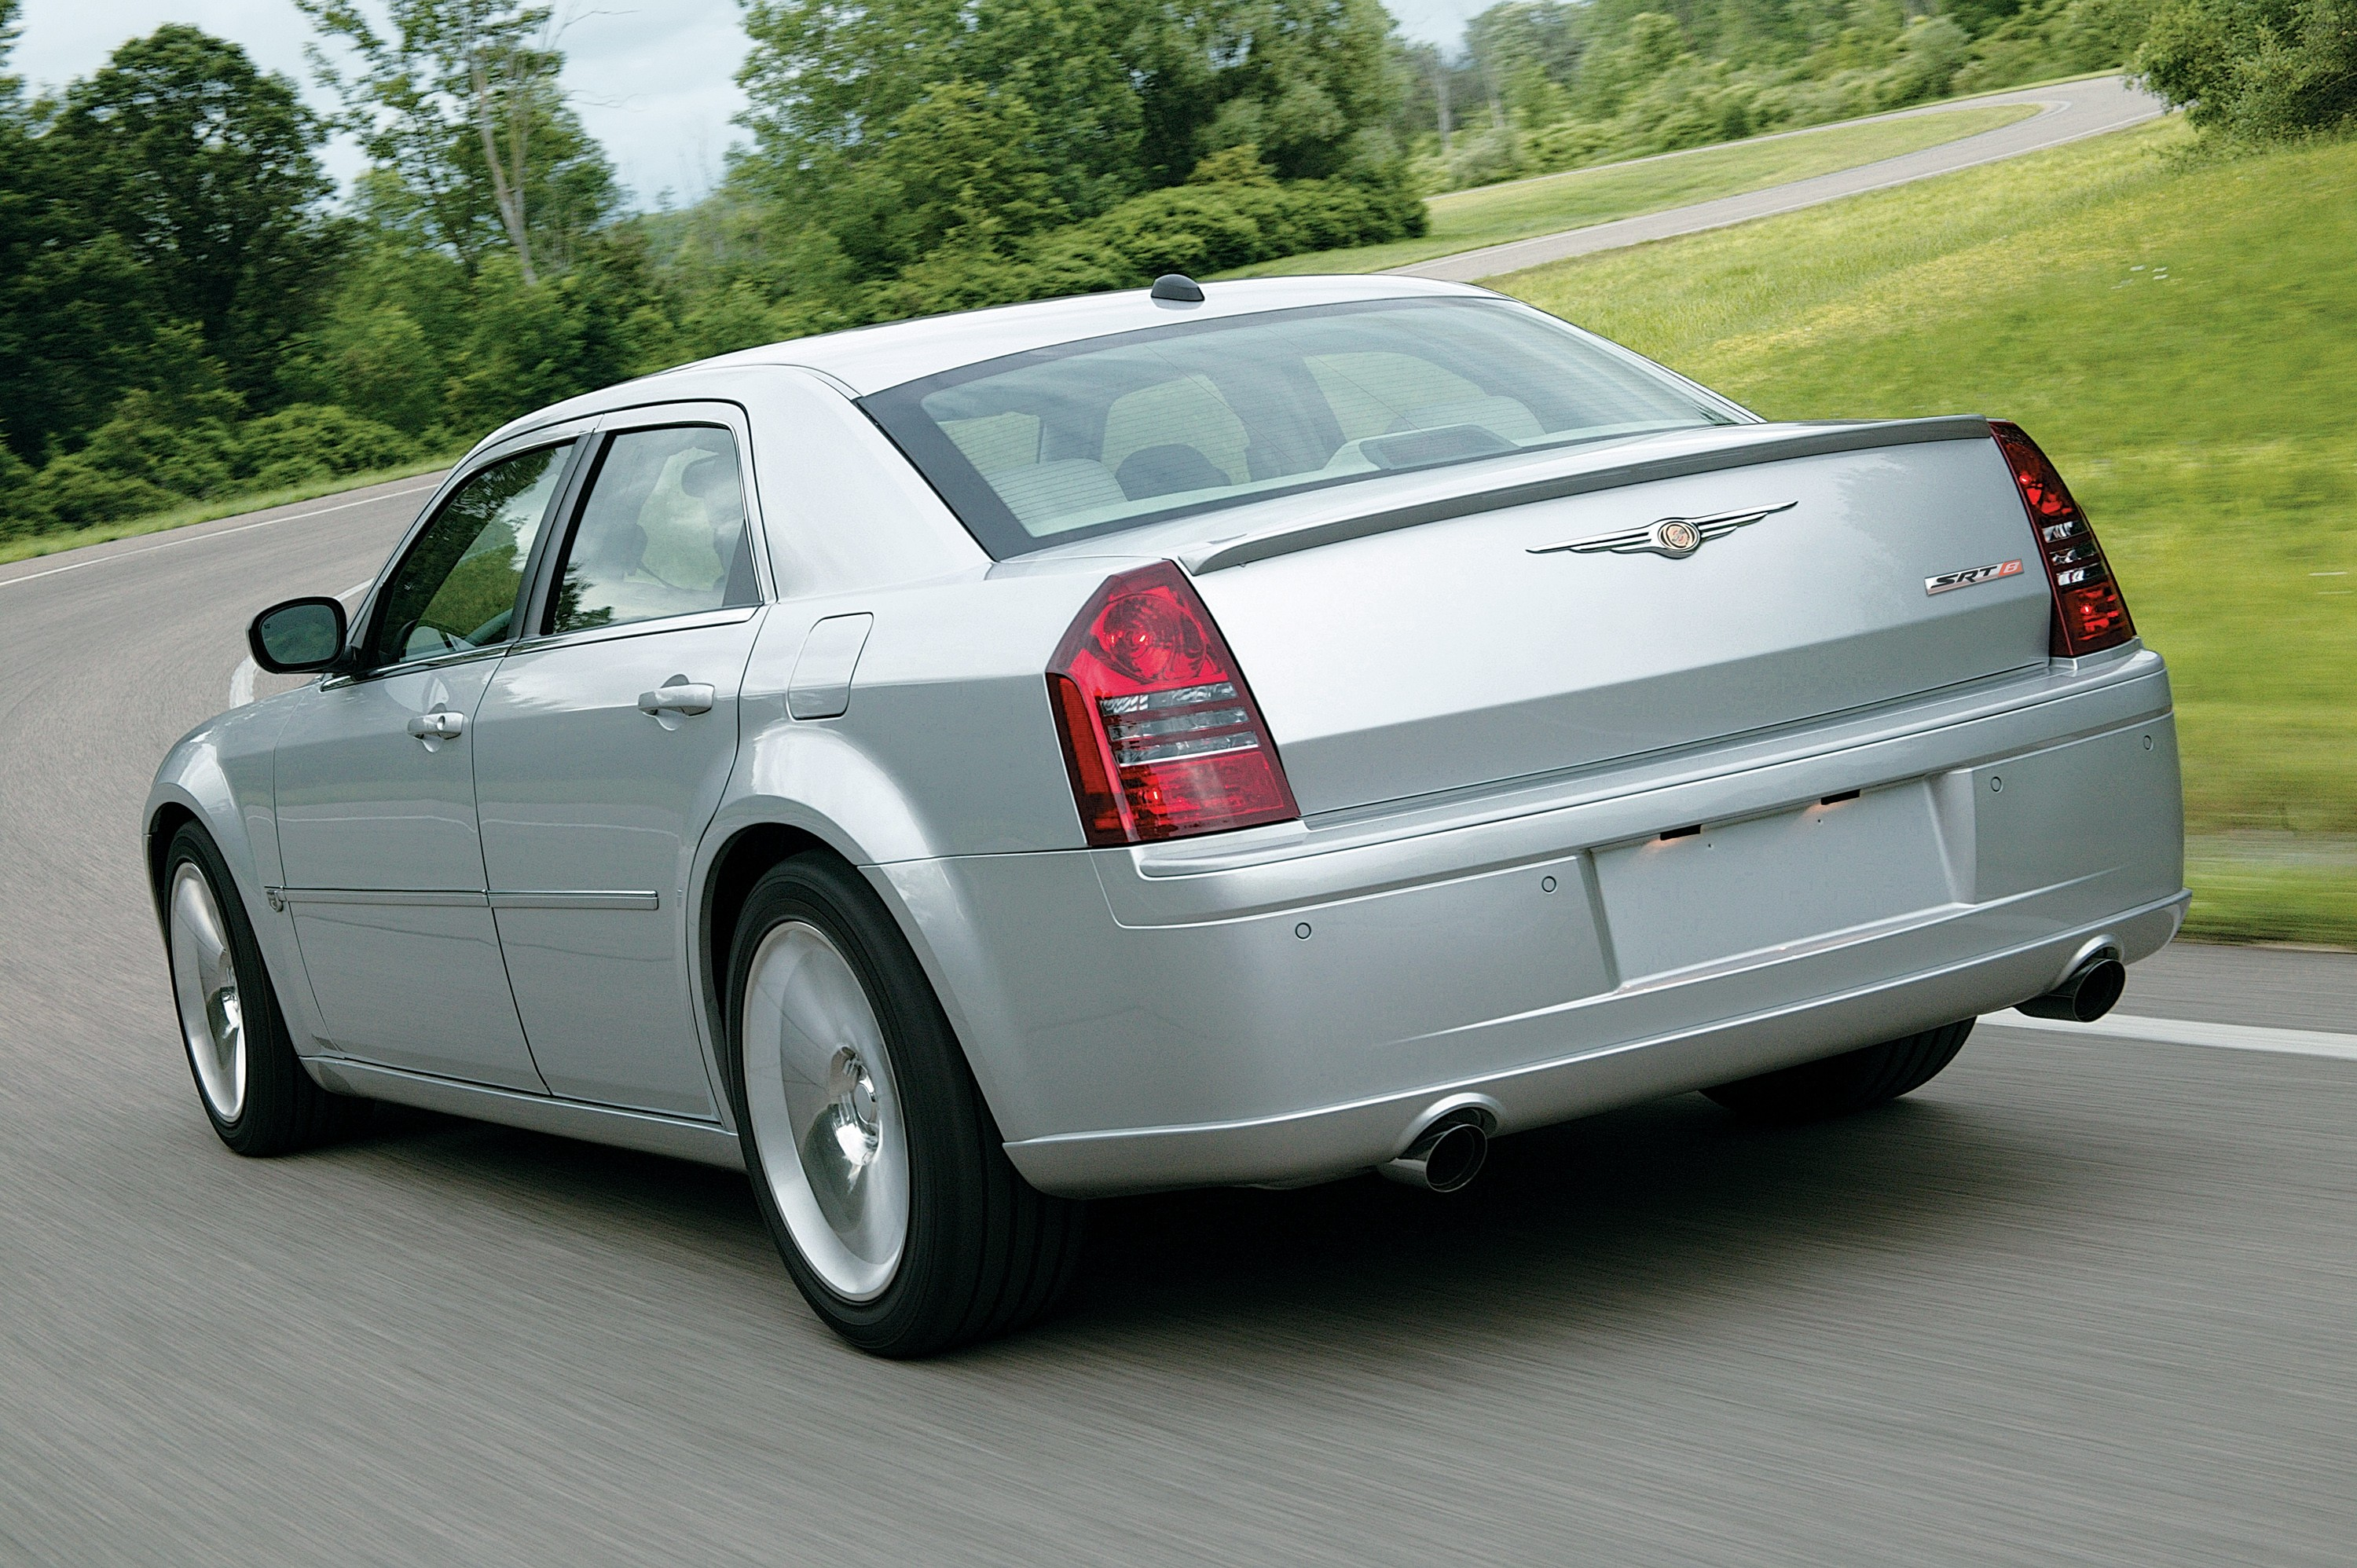 Chrysler 300 2016 Hemi >> CHRYSLER 300C SRT8 specs - 2005, 2006, 2007, 2008, 2009, 2010 - autoevolution